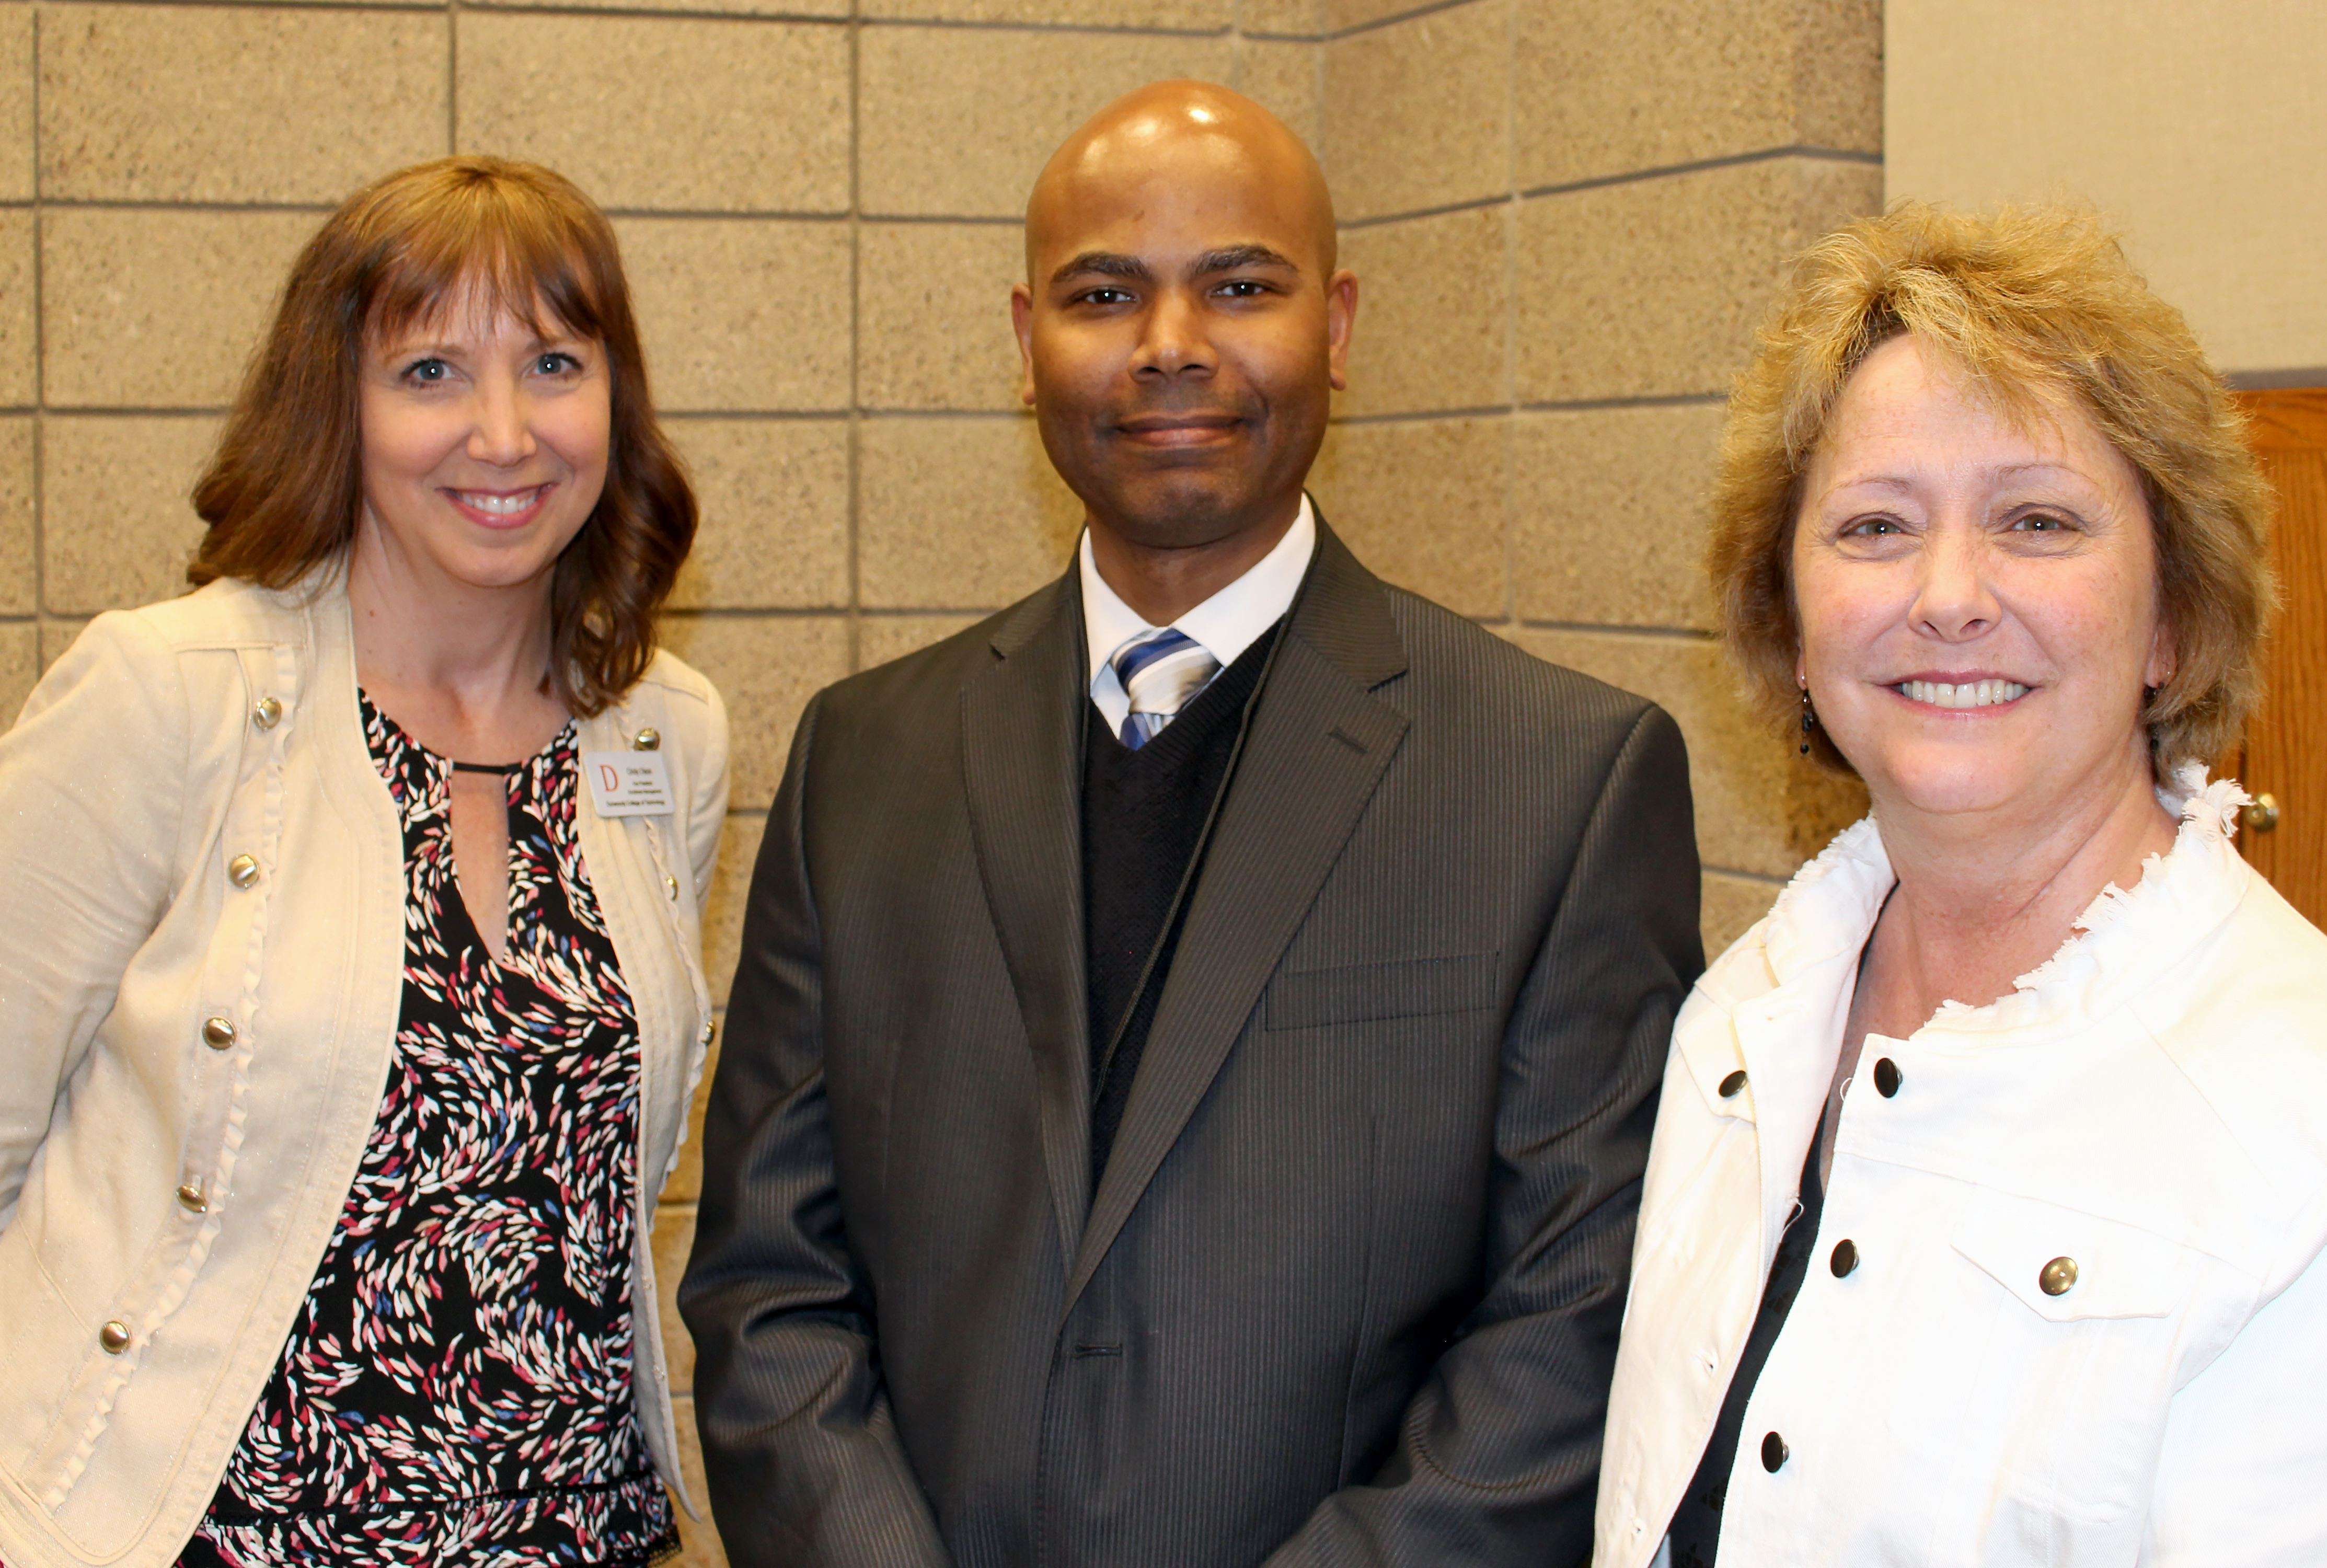 From left to right: Vice President of Enrollment Management Cindy Olson, Principal of Ascension Catholic School Benito Matias, and Associate Director of Special Initiatives Peggy Quam